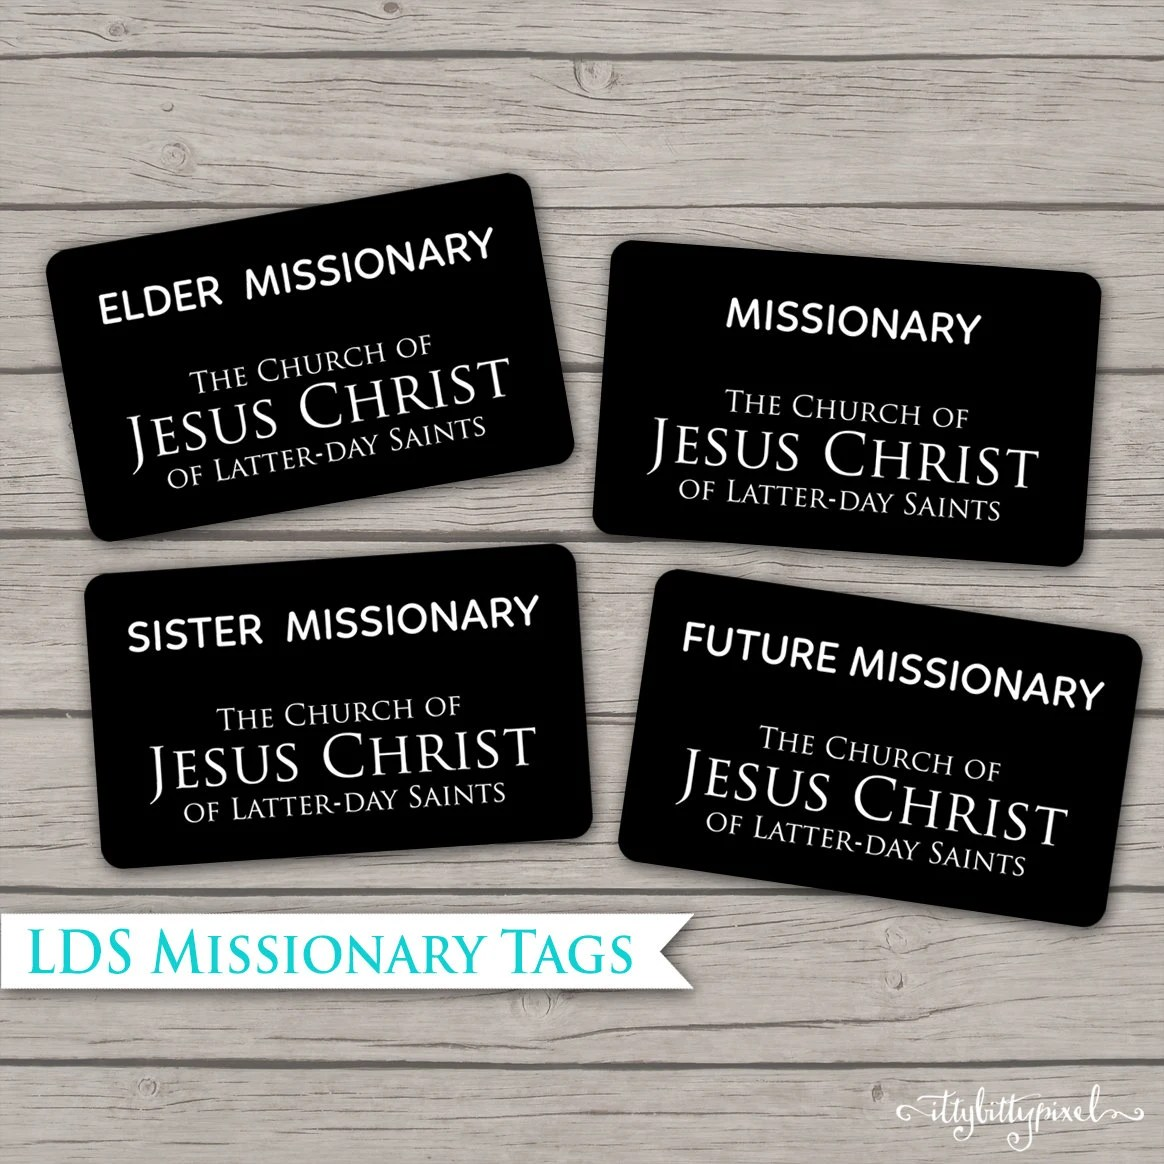 photo about Future Missionary Tag Printable named Custom made Lds Missionary Track record Tags - Studying Mars